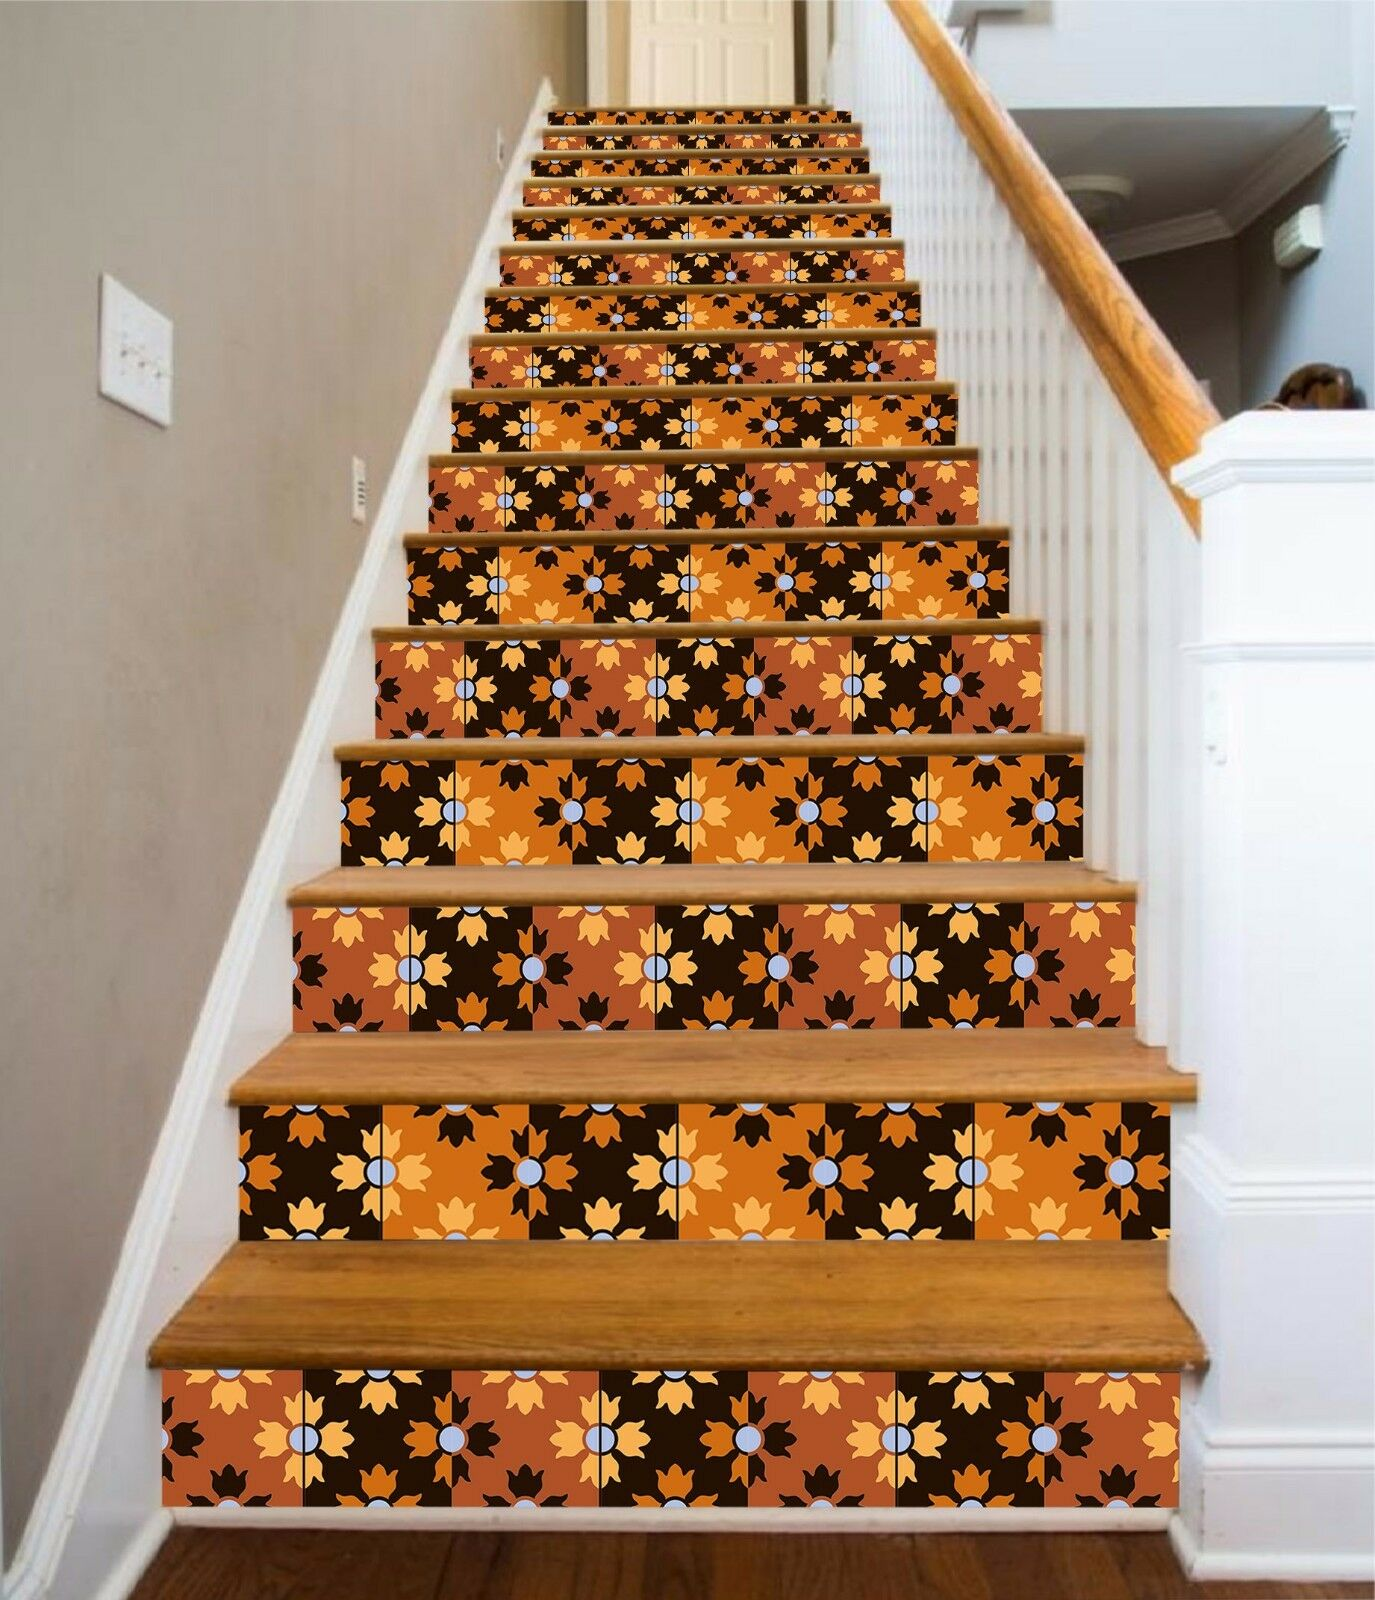 3D Floral Pattern 2 Stair Risers Decoration Photo Mural Vinyl Decal Wallpaper UK